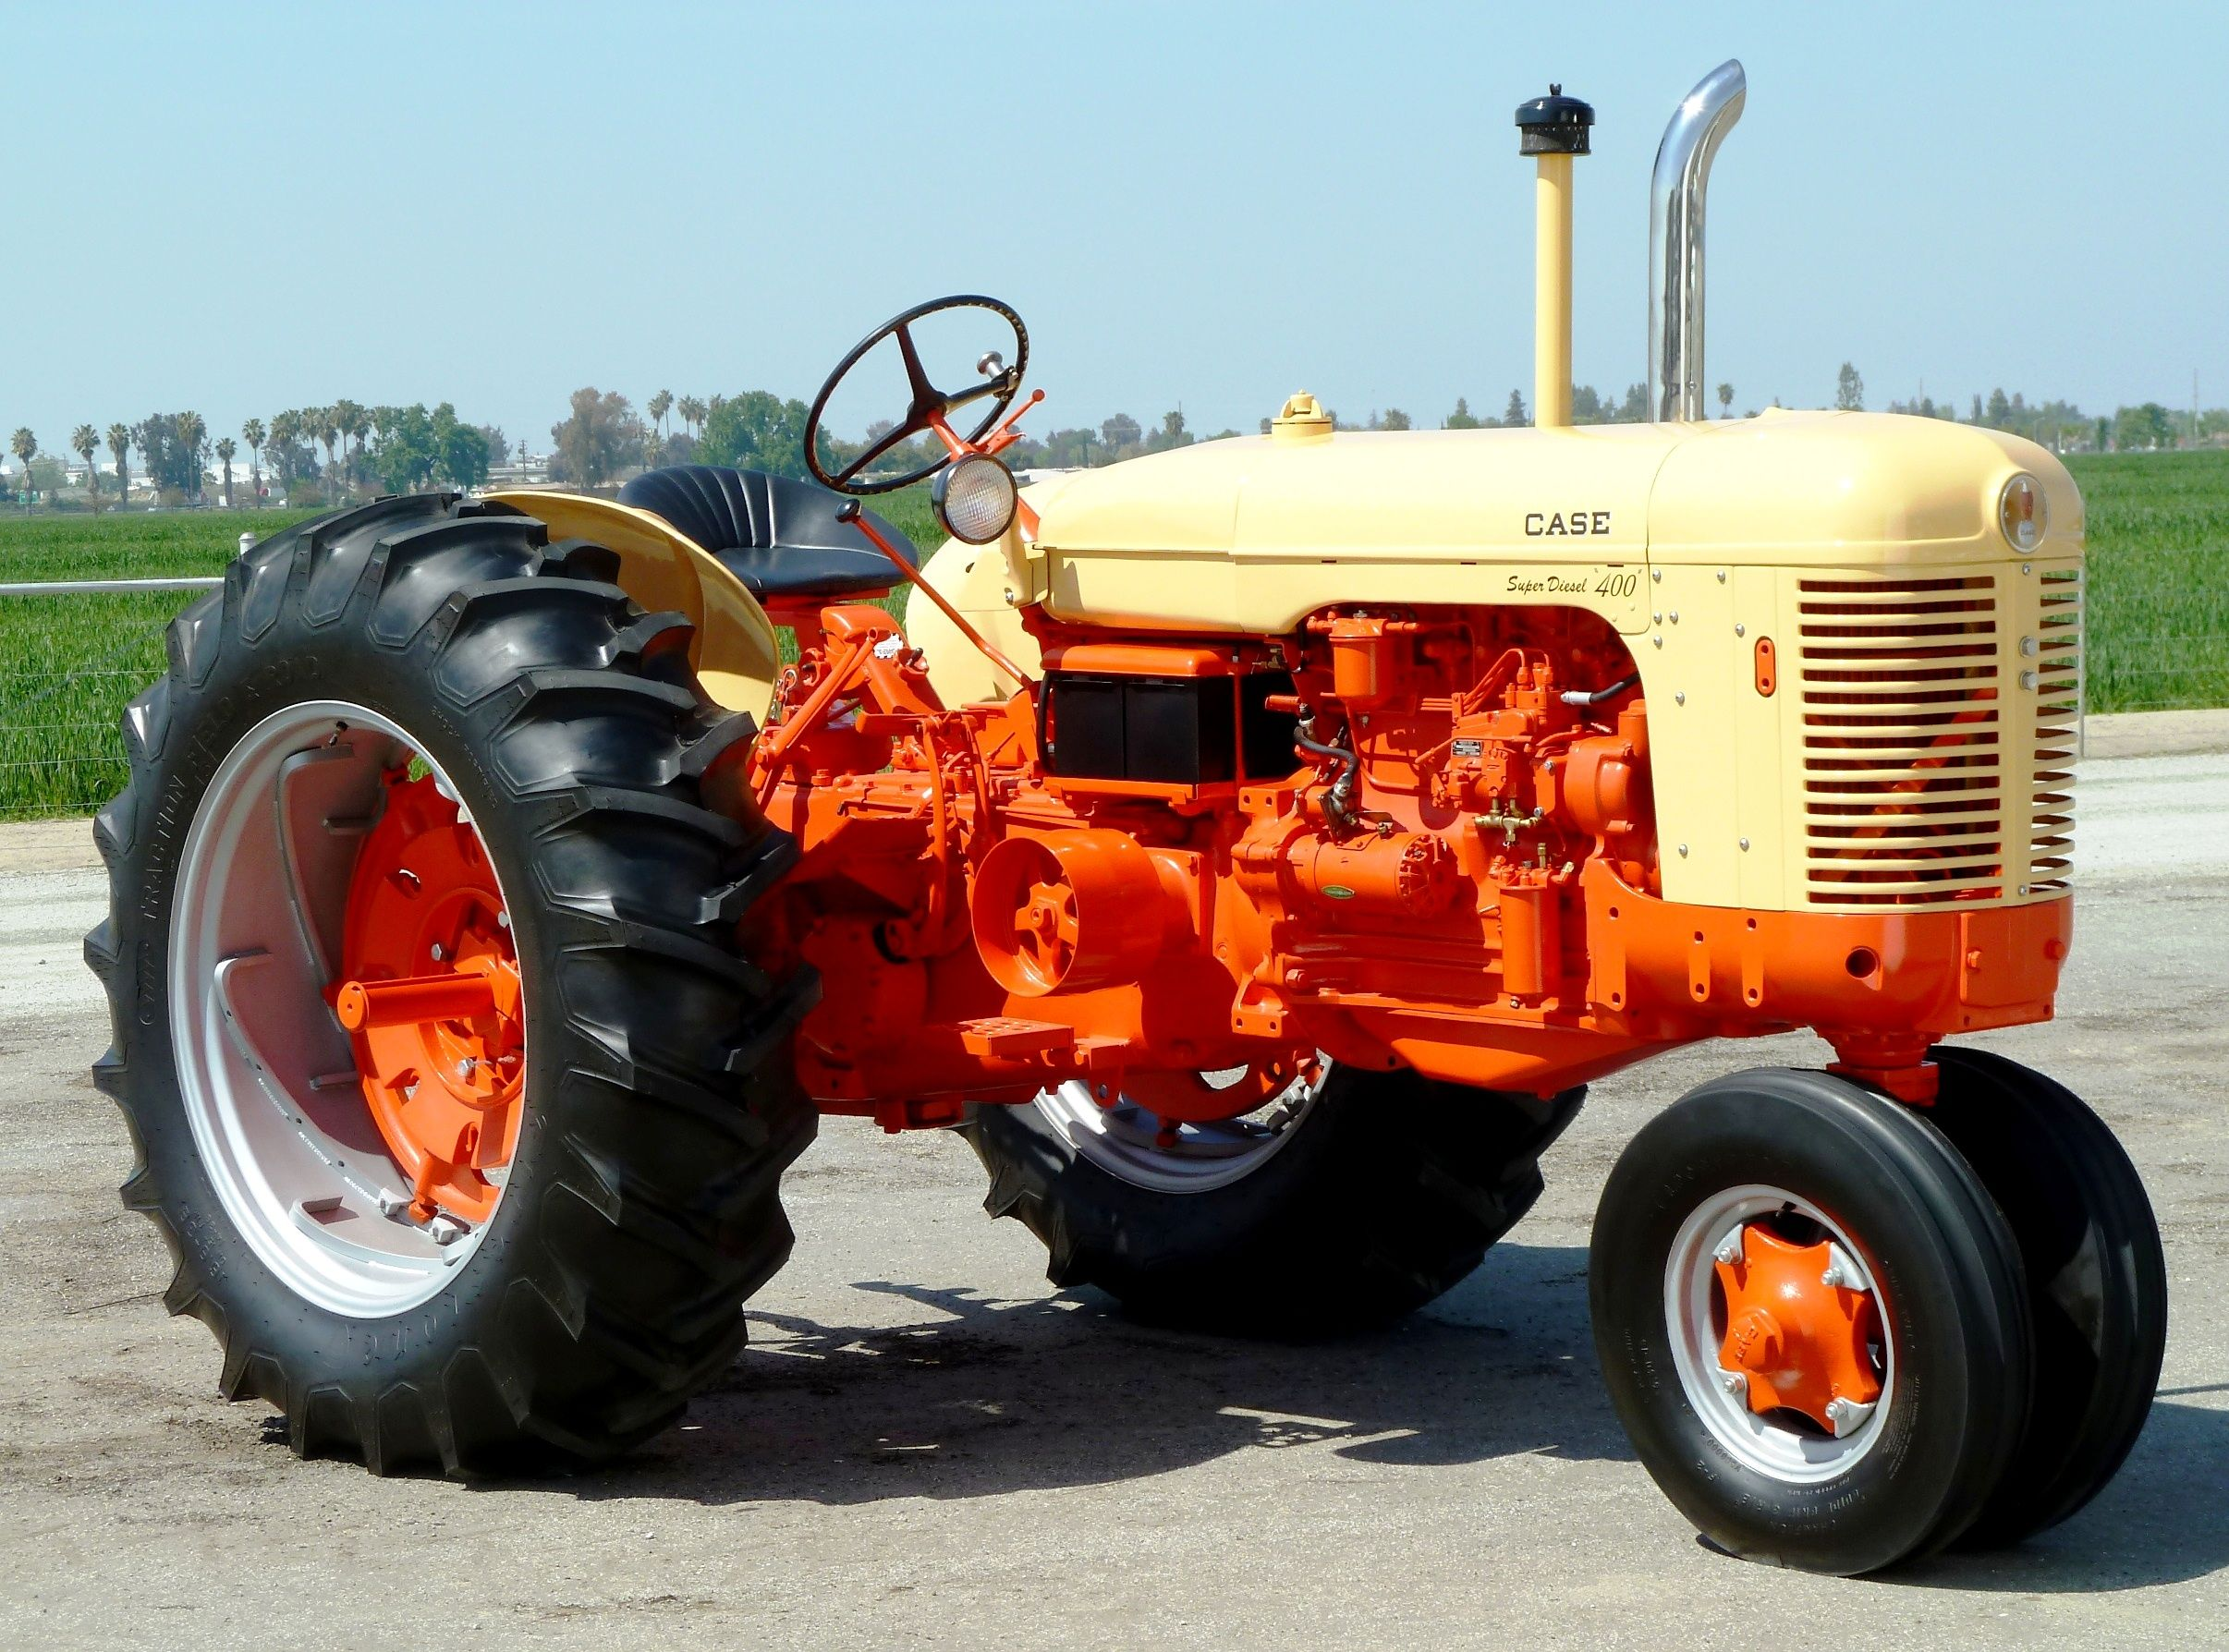 Old Case Tractor : Case tractors john root here is your model clever crafts